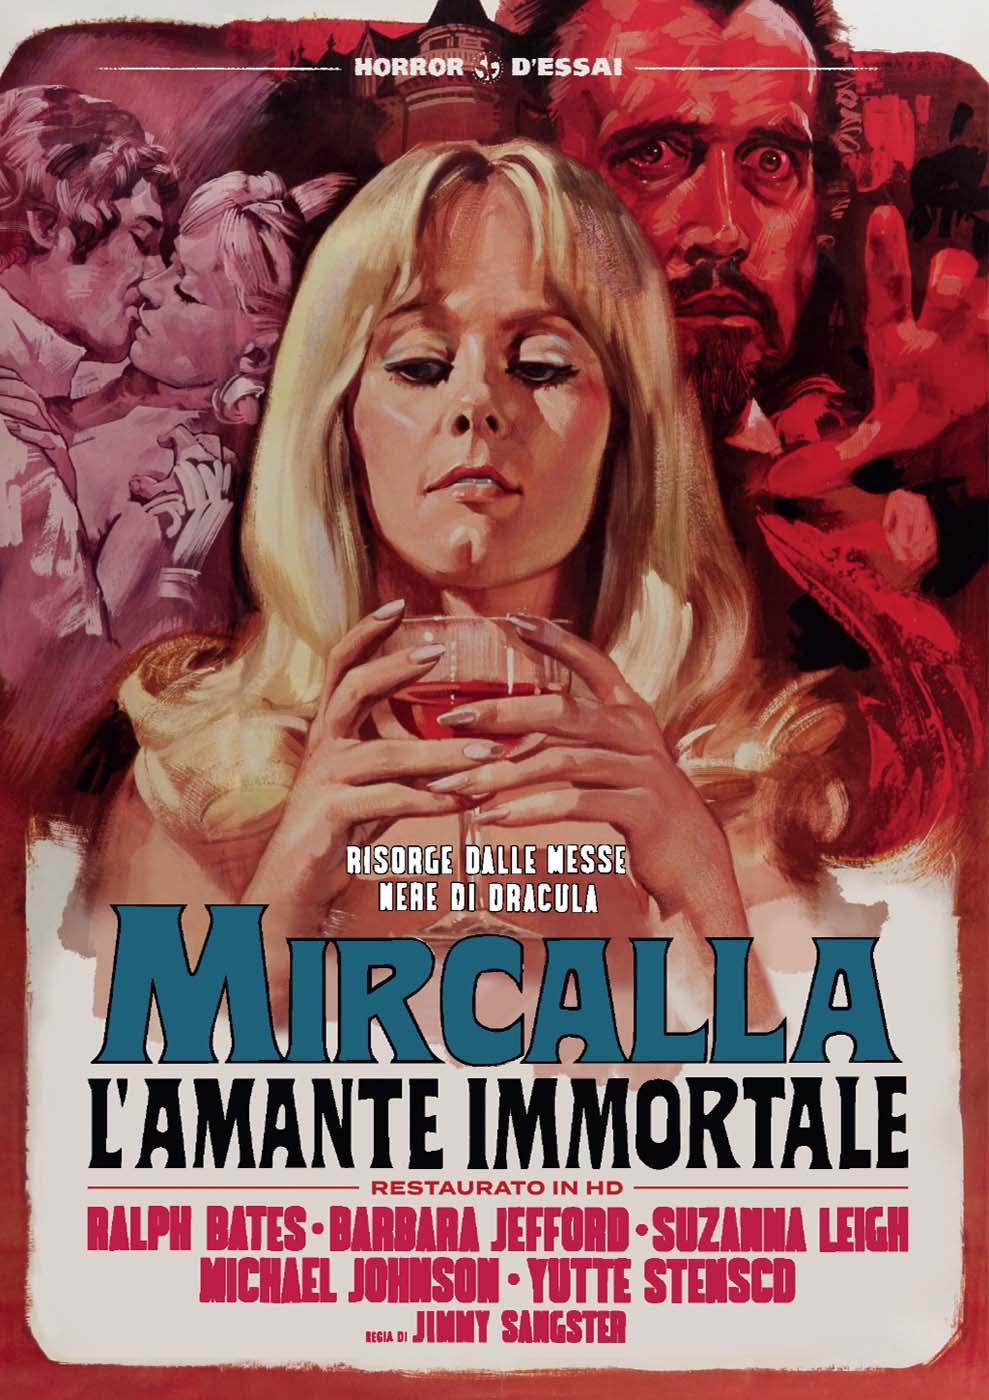 MIRCALLA L'AMANTE IMMORTALE (RESTAURATO IN HD) (DVD)